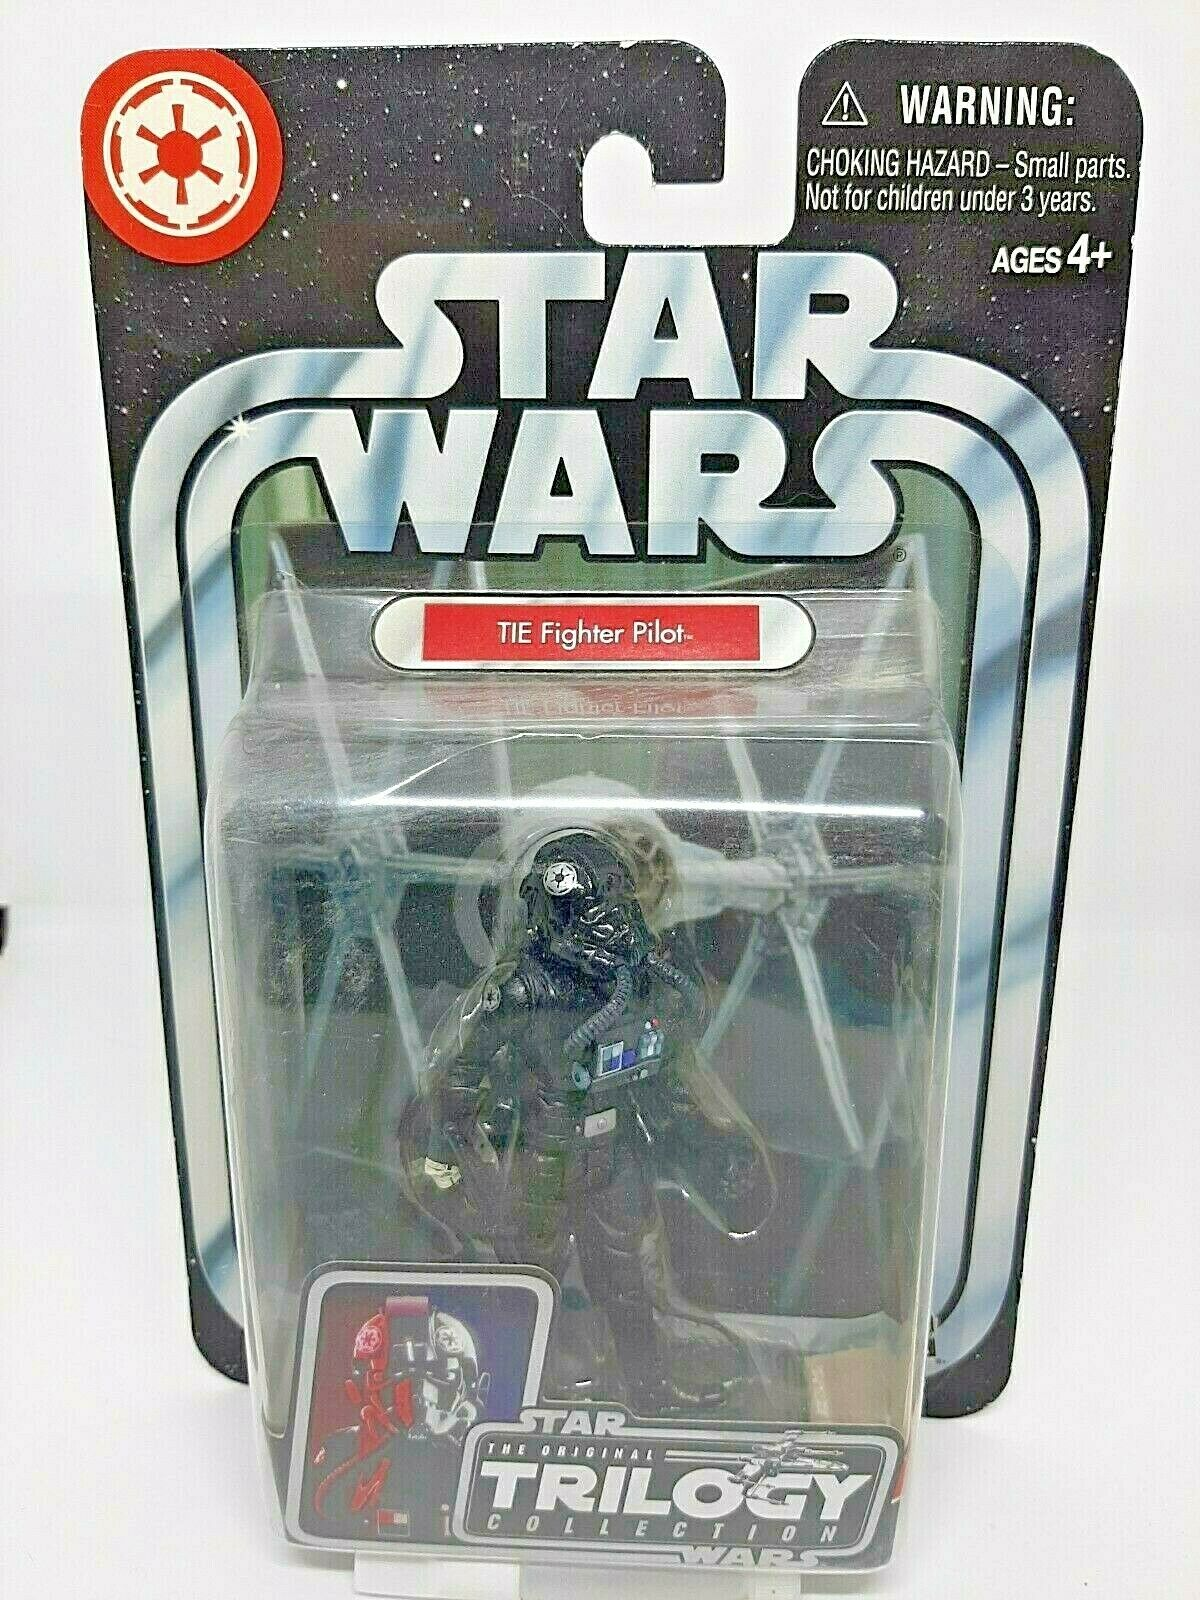 Star Wars 2004 la OTC collection TIE Fighter Pilot # 21